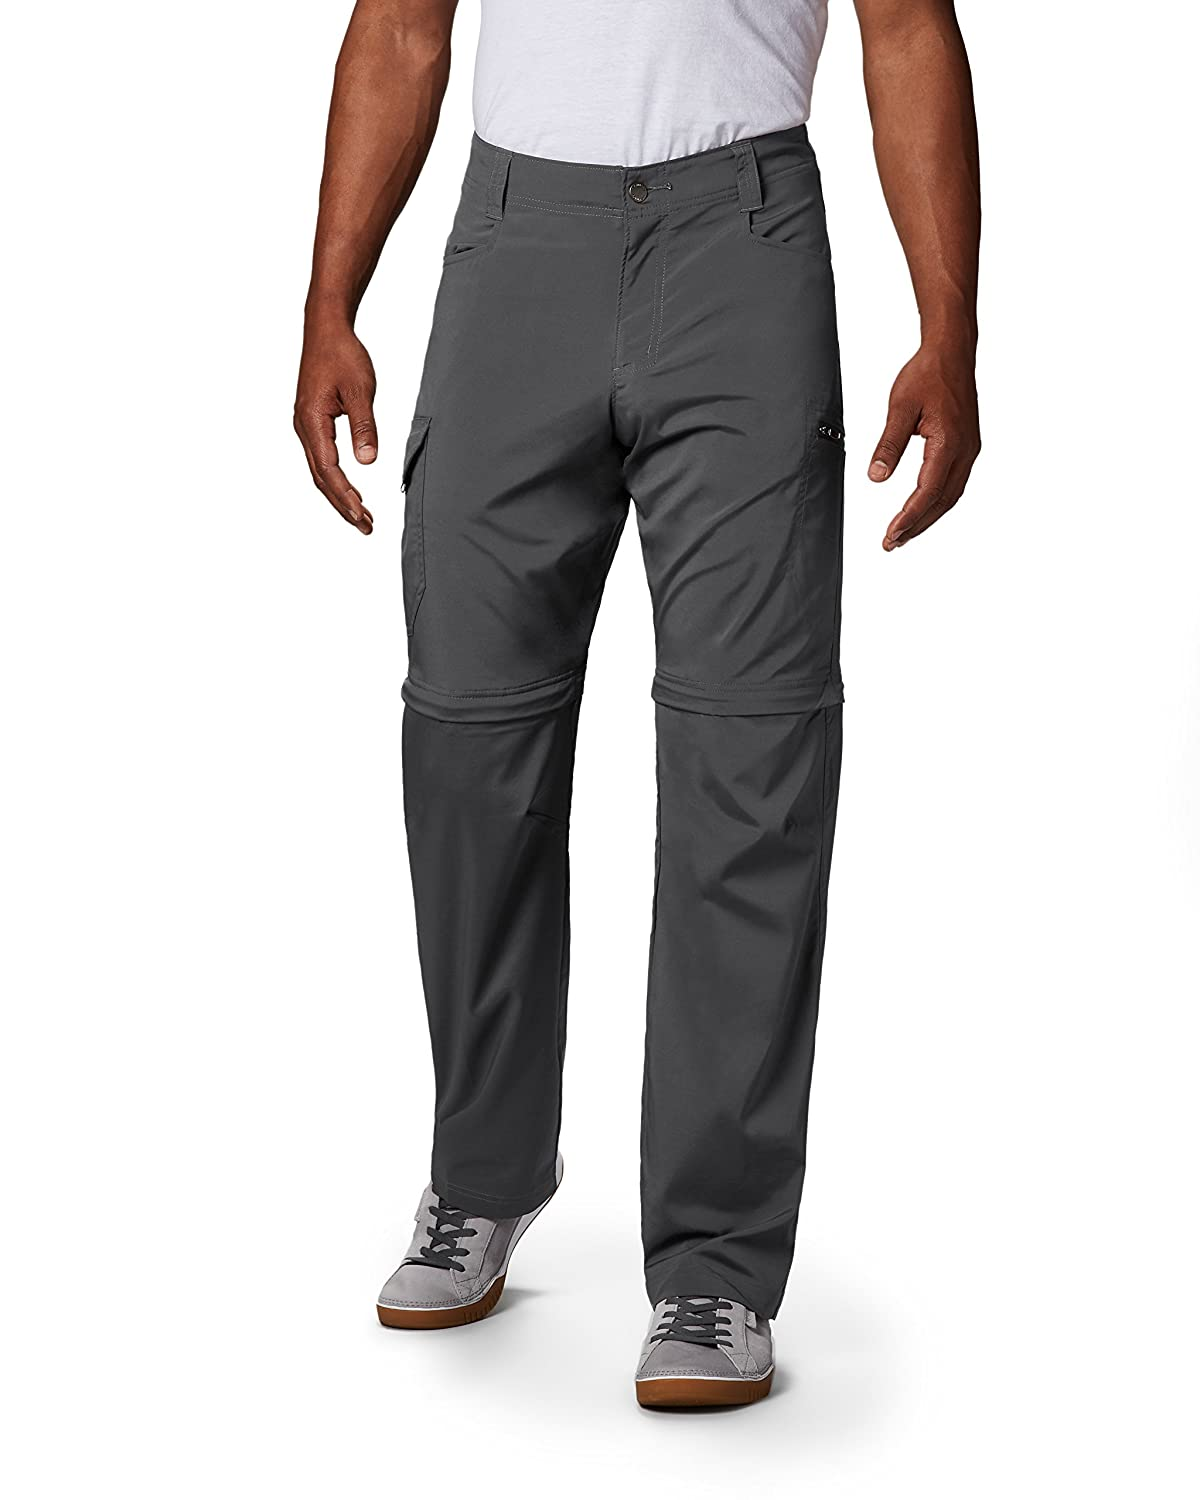 Columbia Silver Ridge Stretch Convertible Pant Columbia (Sporting Goods) 1663491221-36x30